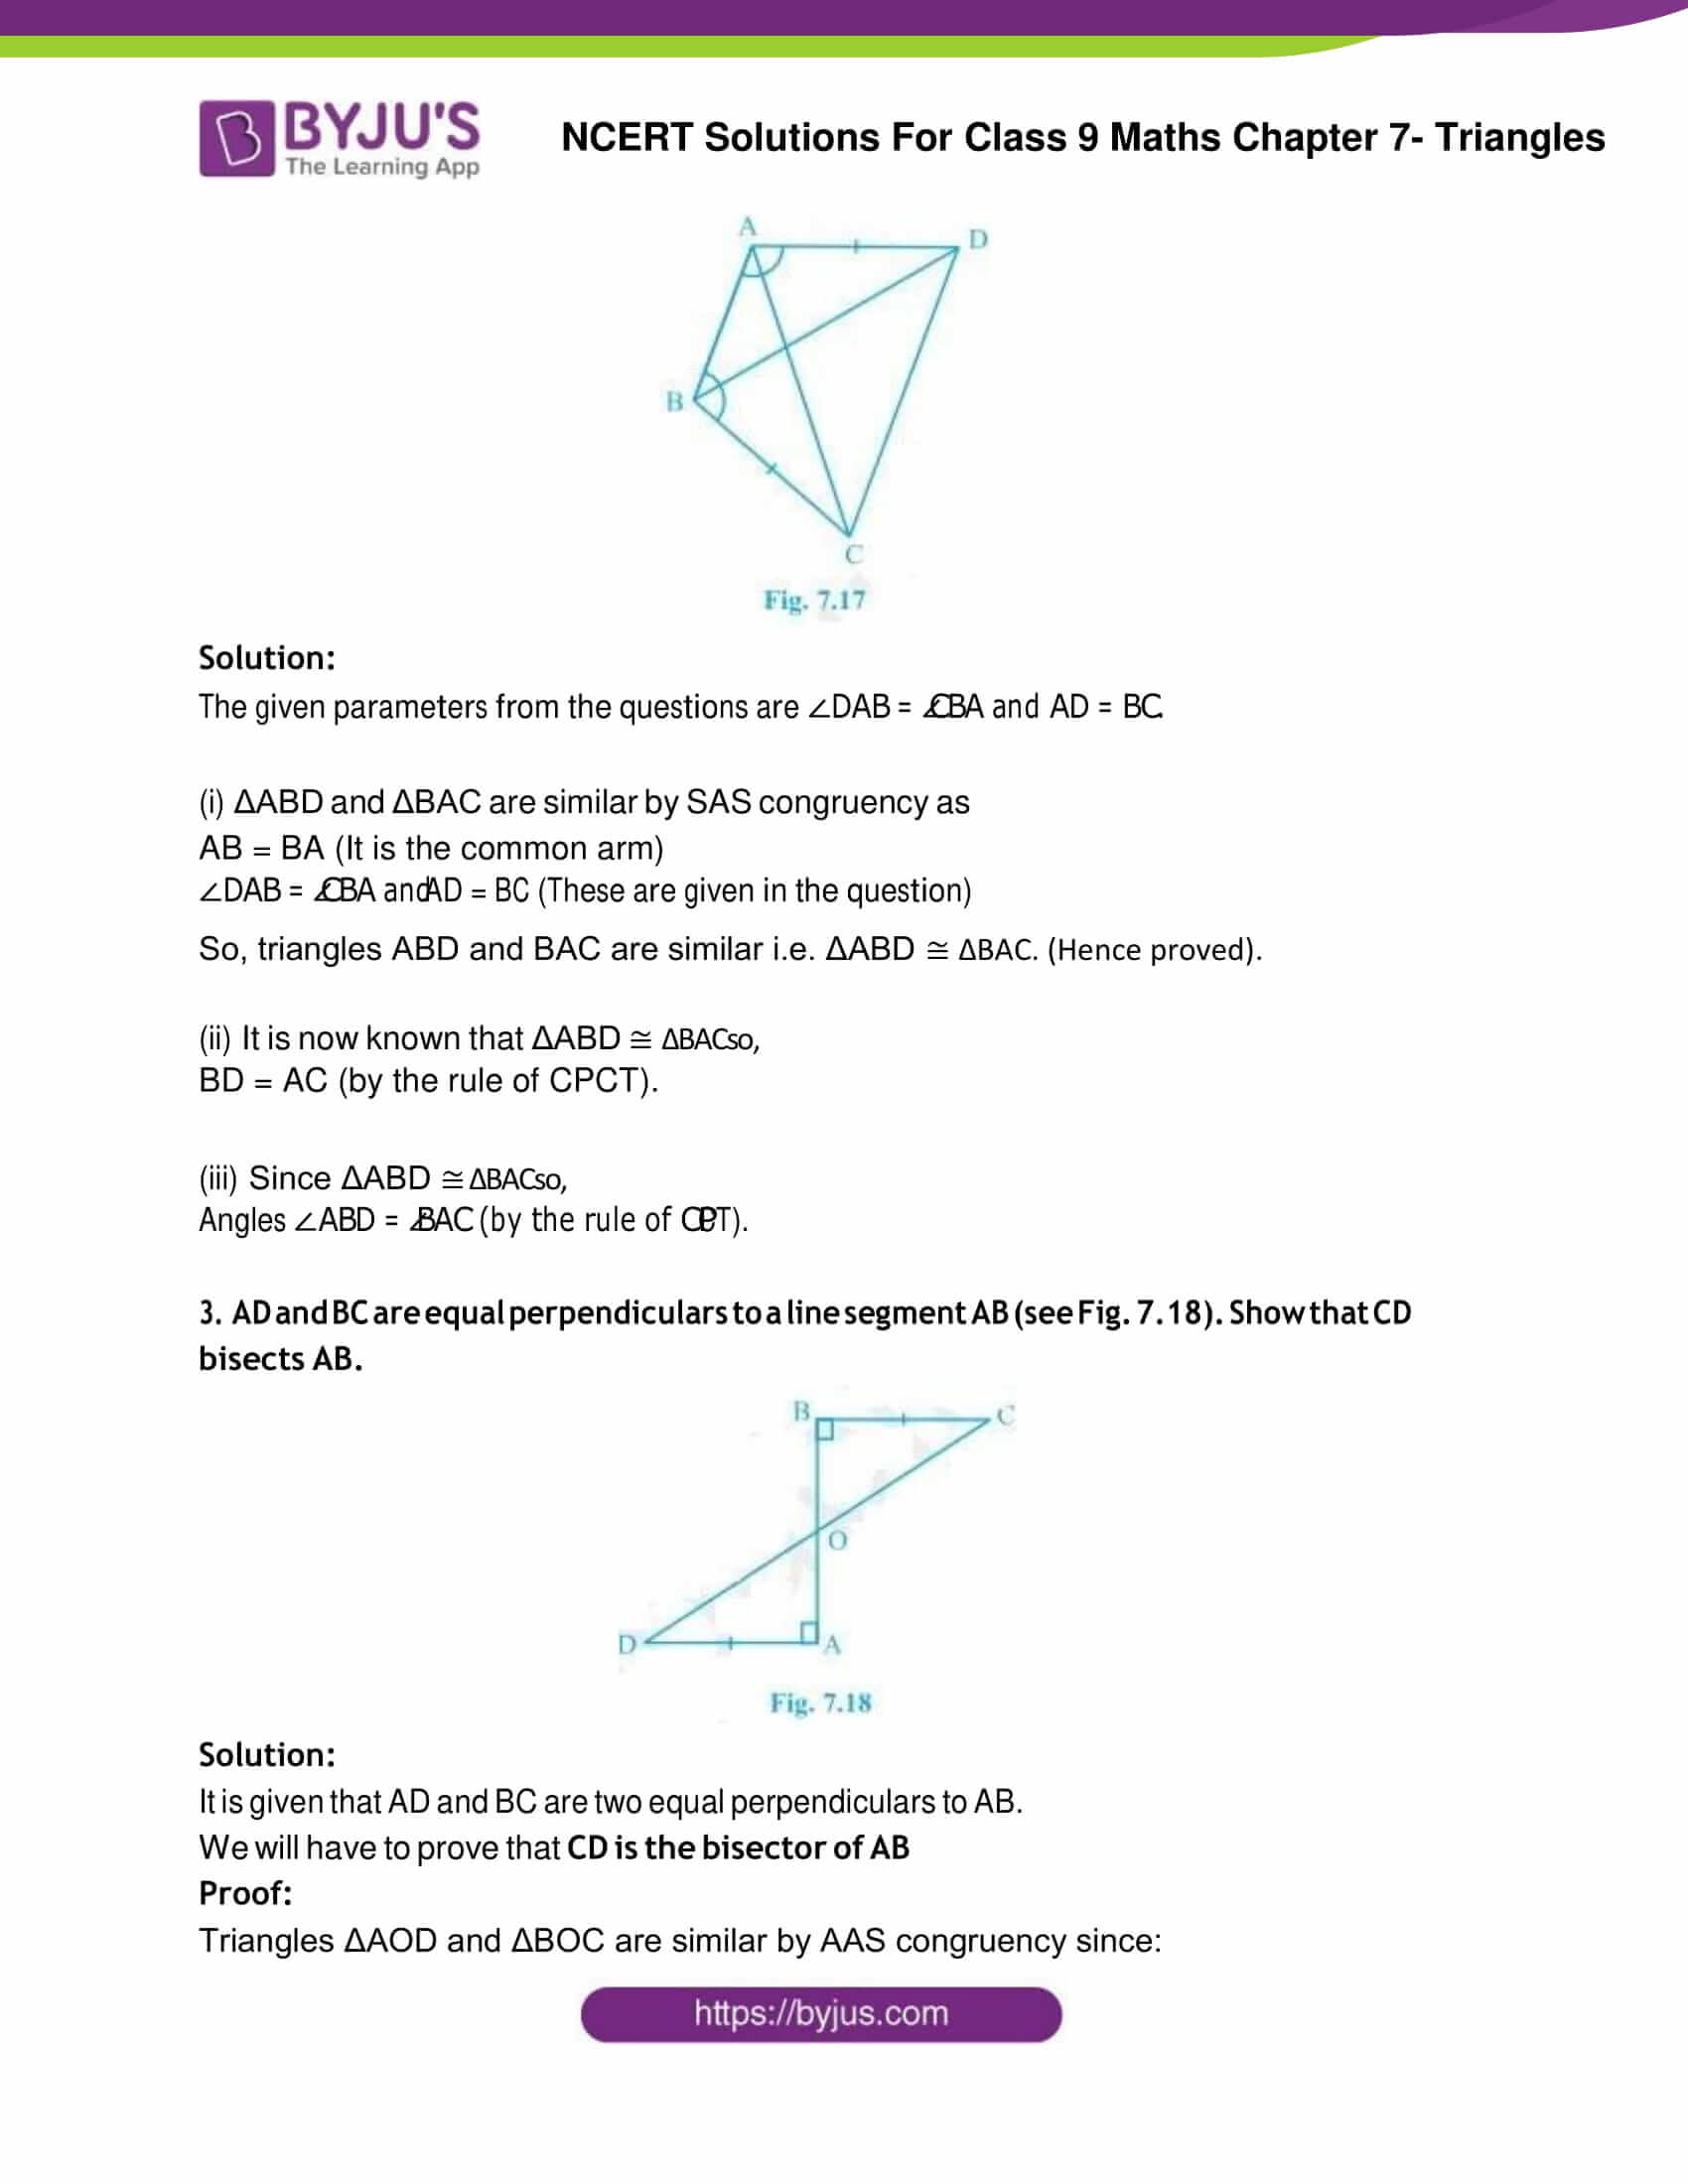 NCERT Solution Class 9 Maths Chapter 7 Triangles Exercise 7.1 Part 2